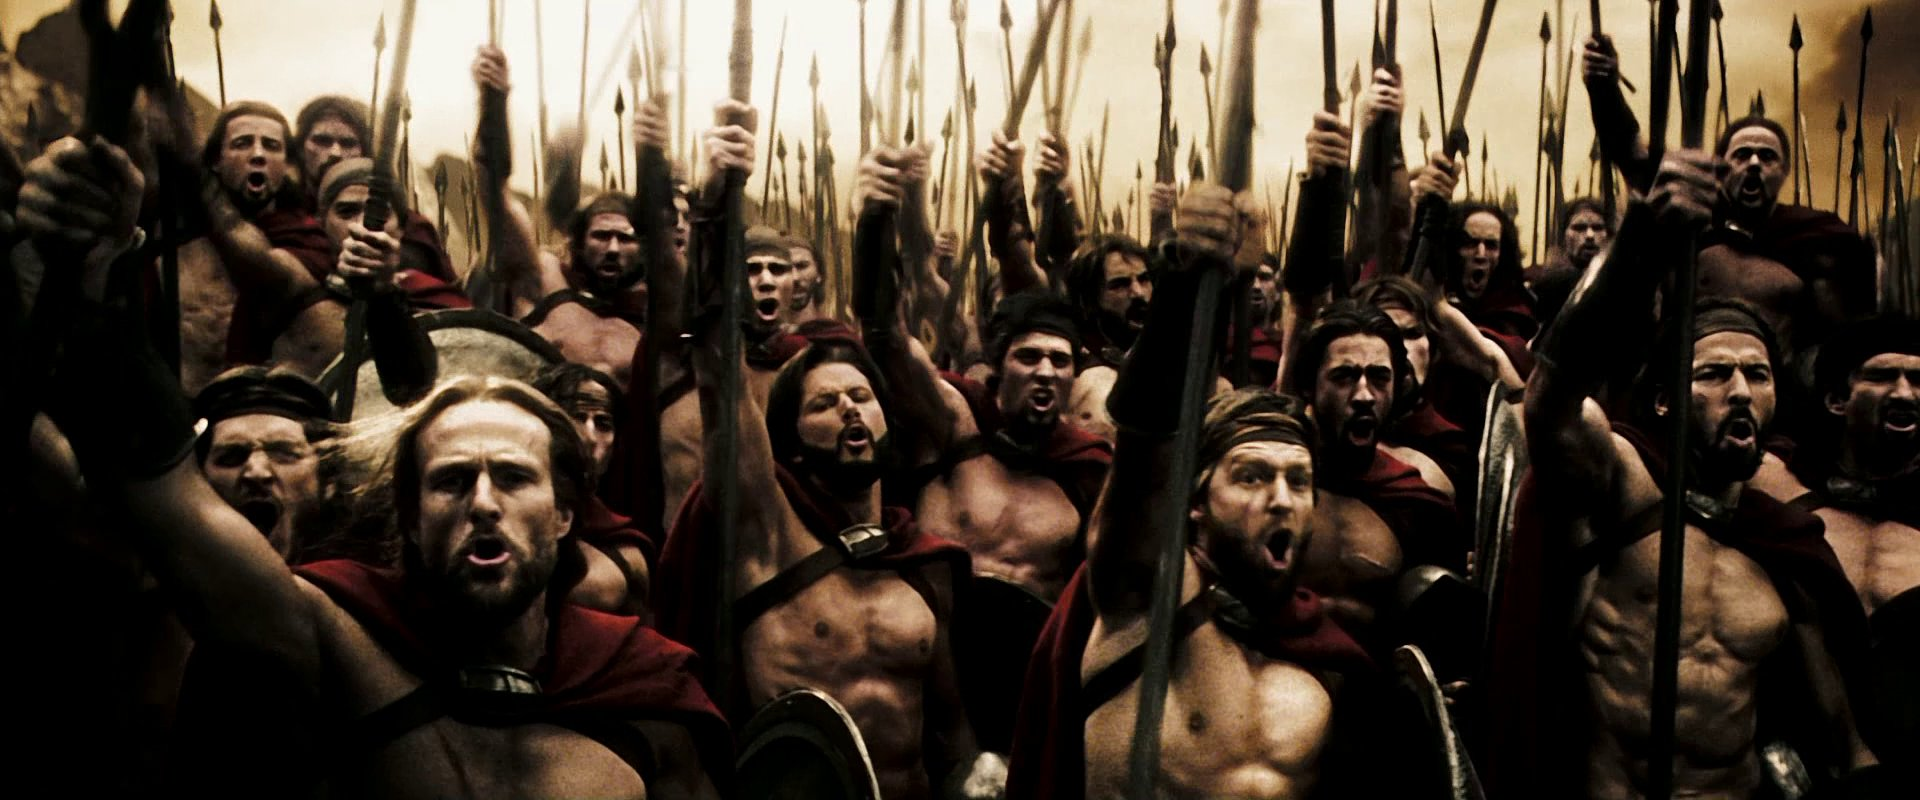 spartans-what-is-your-profession